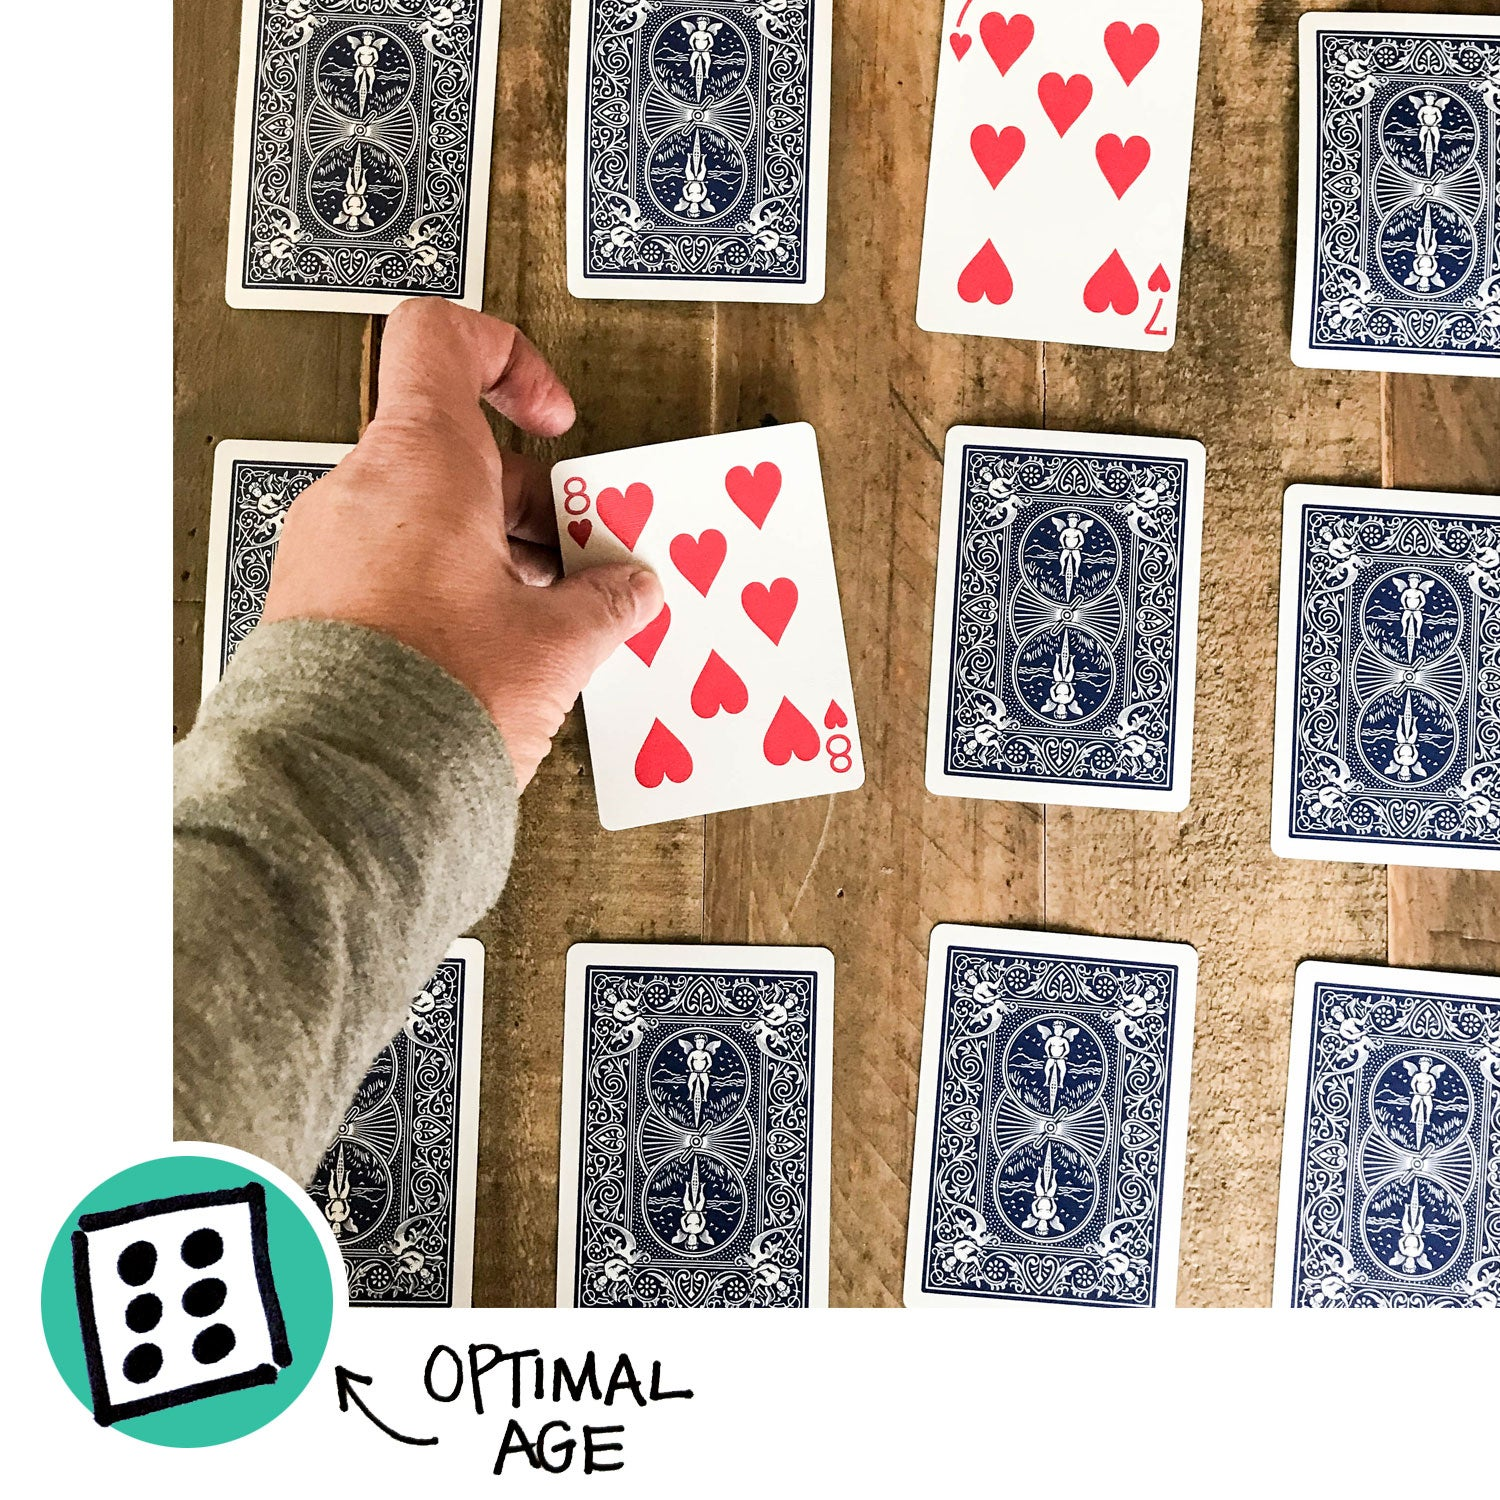 A person playing Concentration with a deck of playing cards.